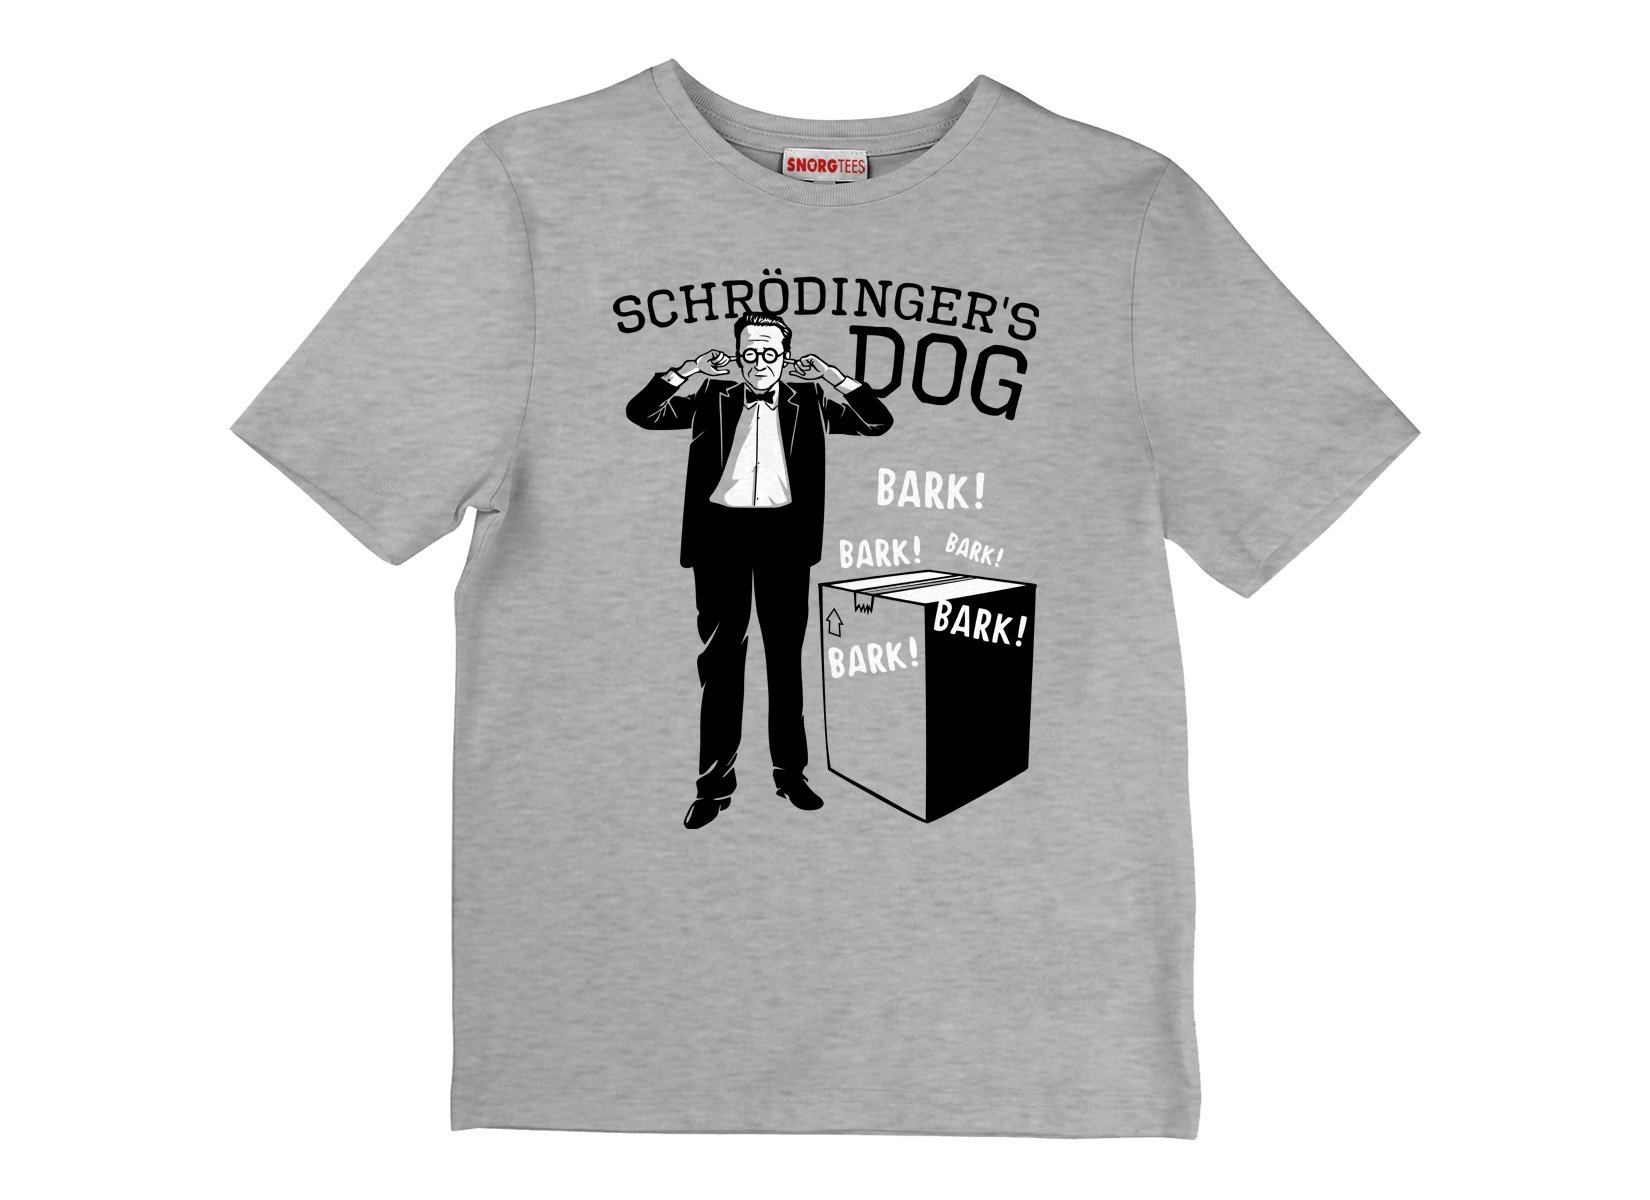 Schrodinger's Dog on Kids T-Shirt